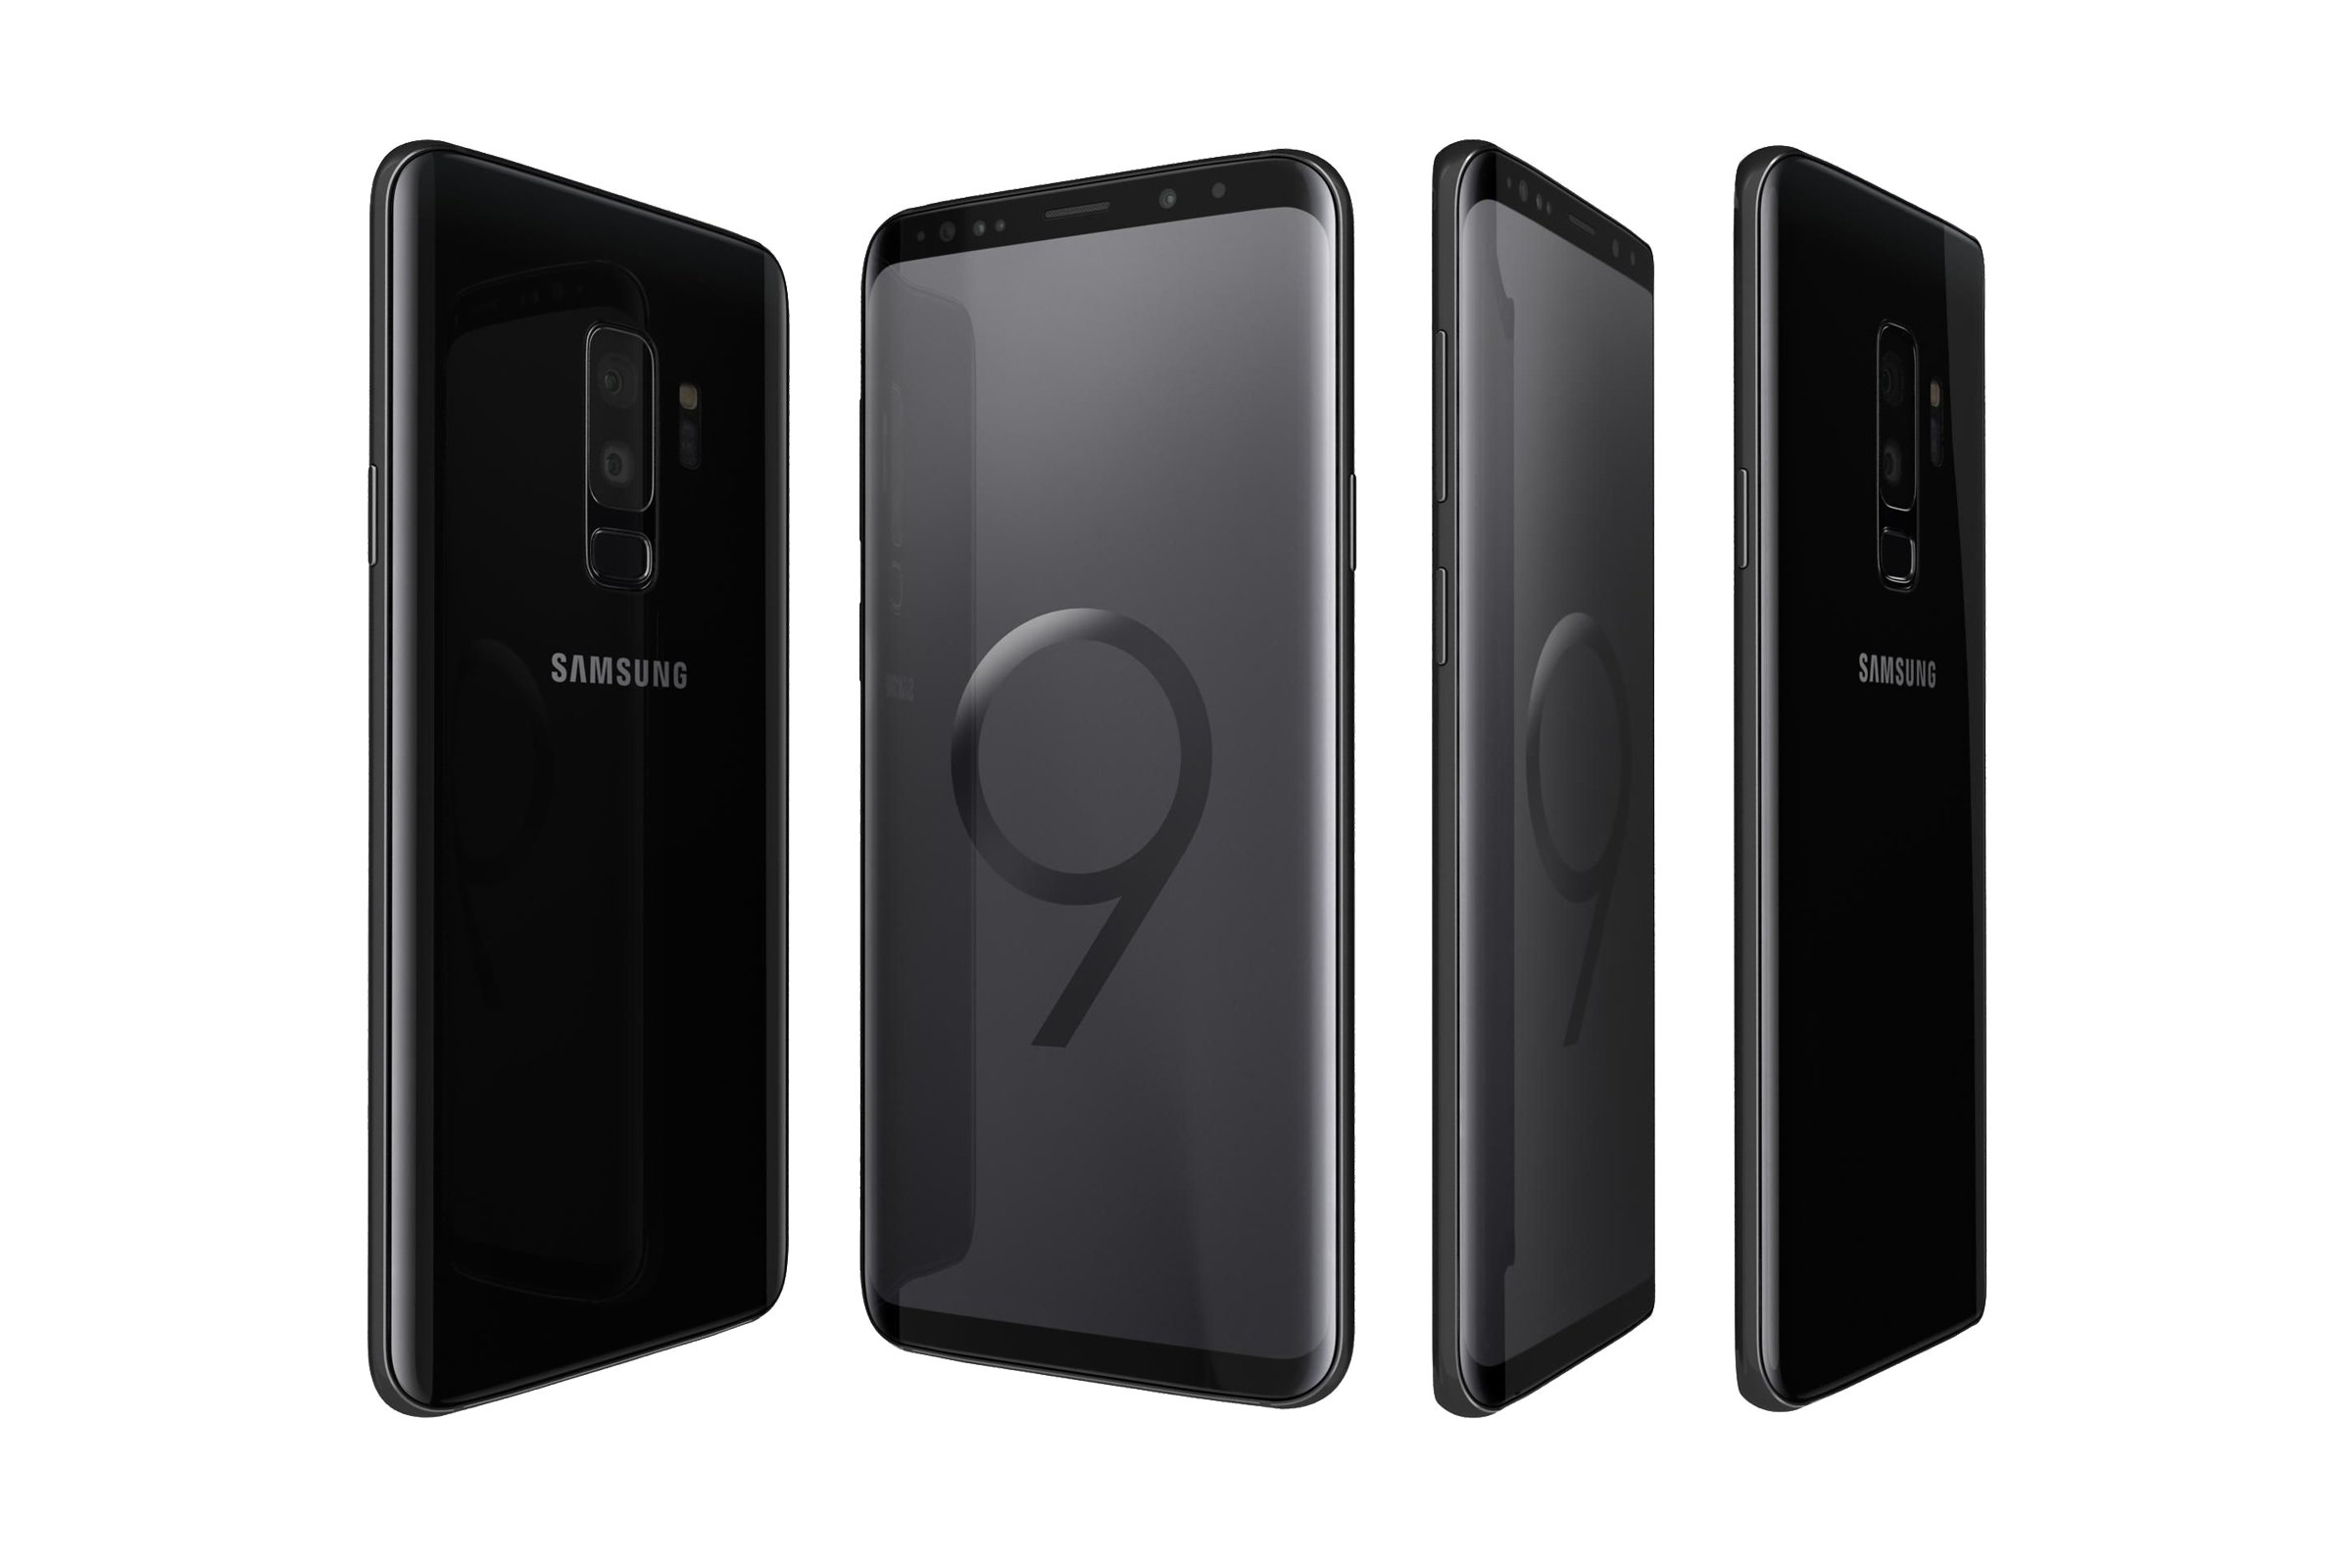 samsung galaxy s9 duos midnight black sm g965f ds grade b mobiles and wearables phones and. Black Bedroom Furniture Sets. Home Design Ideas